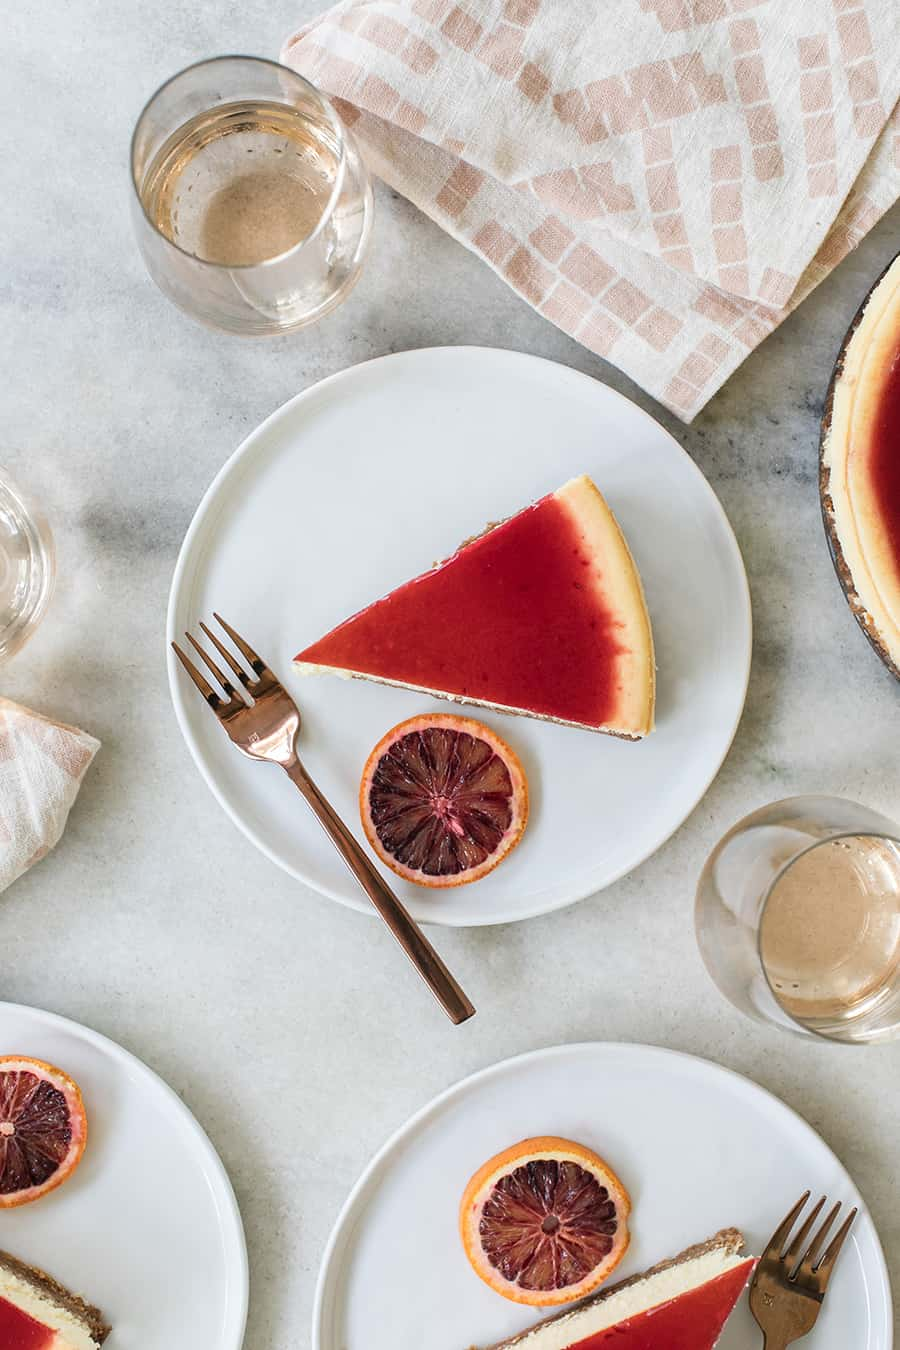 blood orange cheesecake on a white plate with a gold fork and slice of orange.